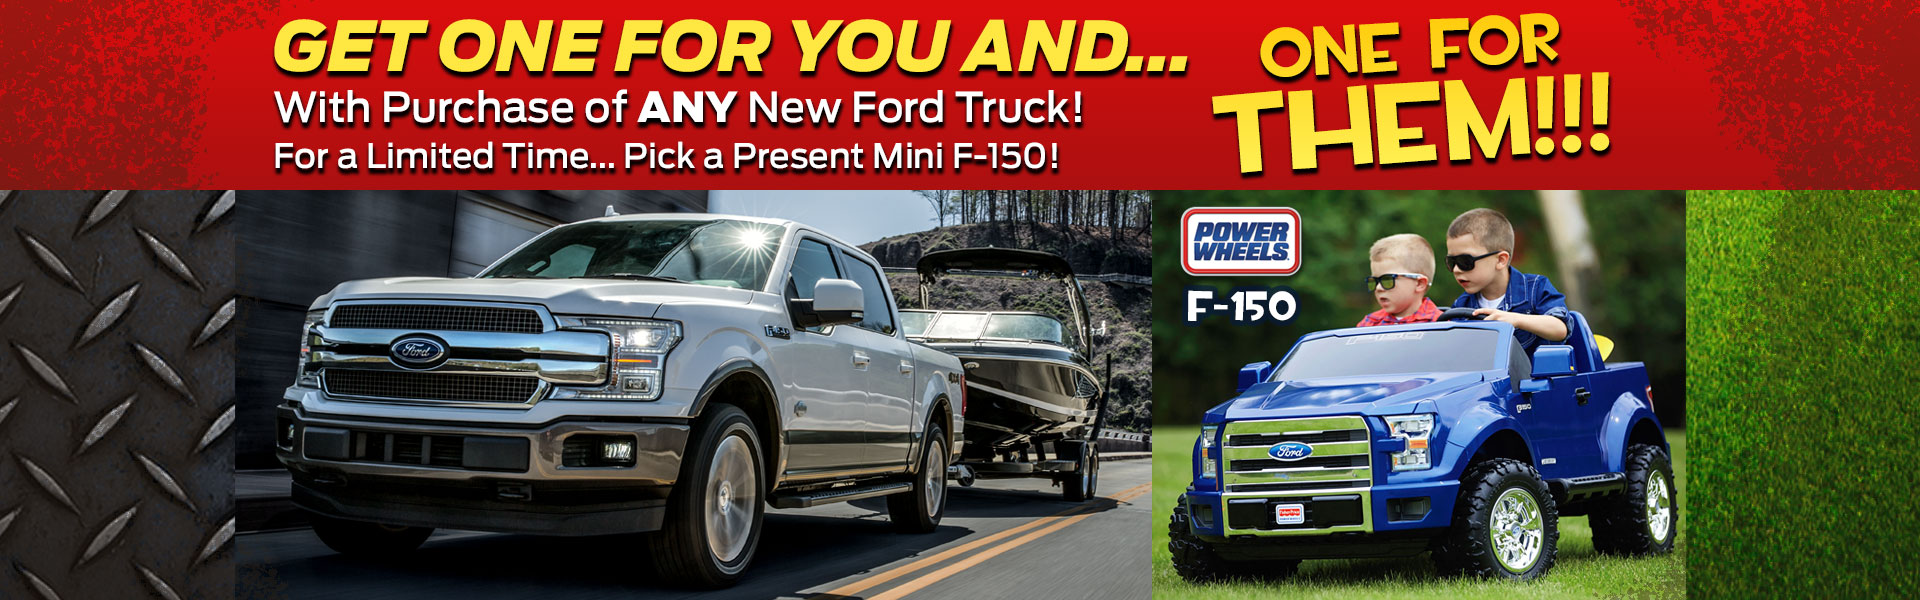 Get a Mini F-150 with New Ford Truck Purchase